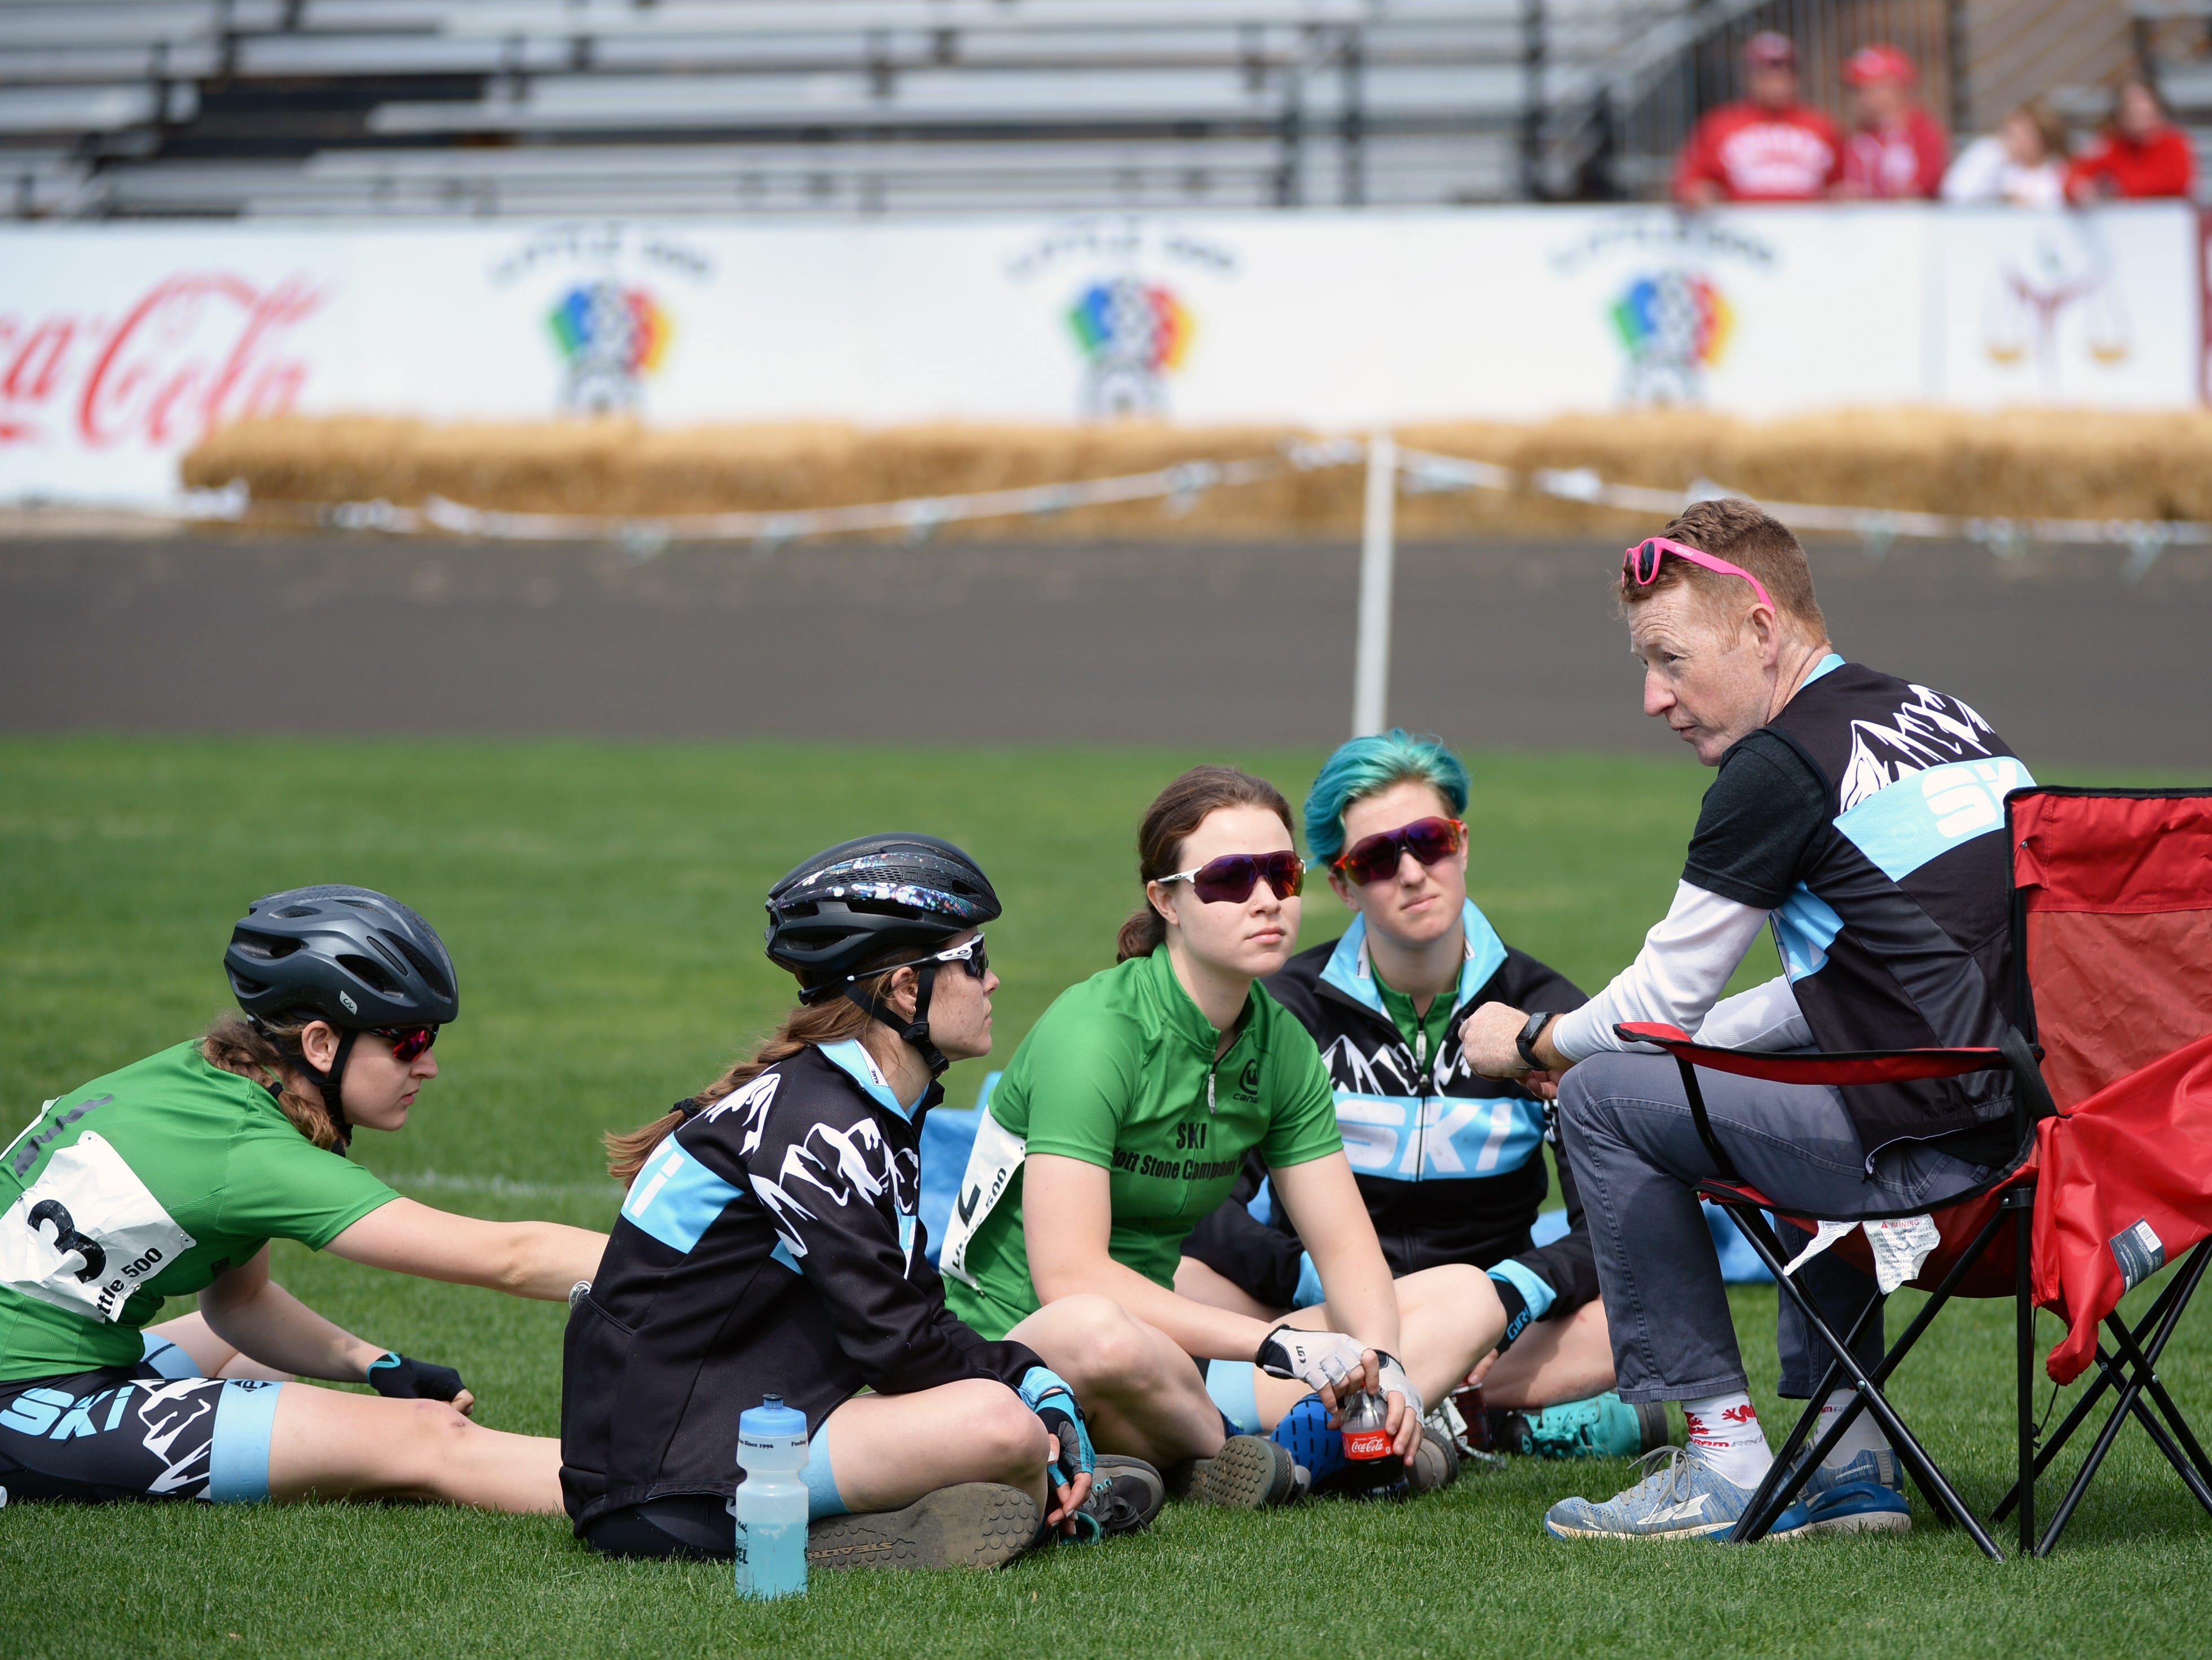 Ski talks with their coach prior to the start of the women's Little 500 at Bill Armstrong Stadium in Bloomington, Ind., on Friday, April 12, 2019.